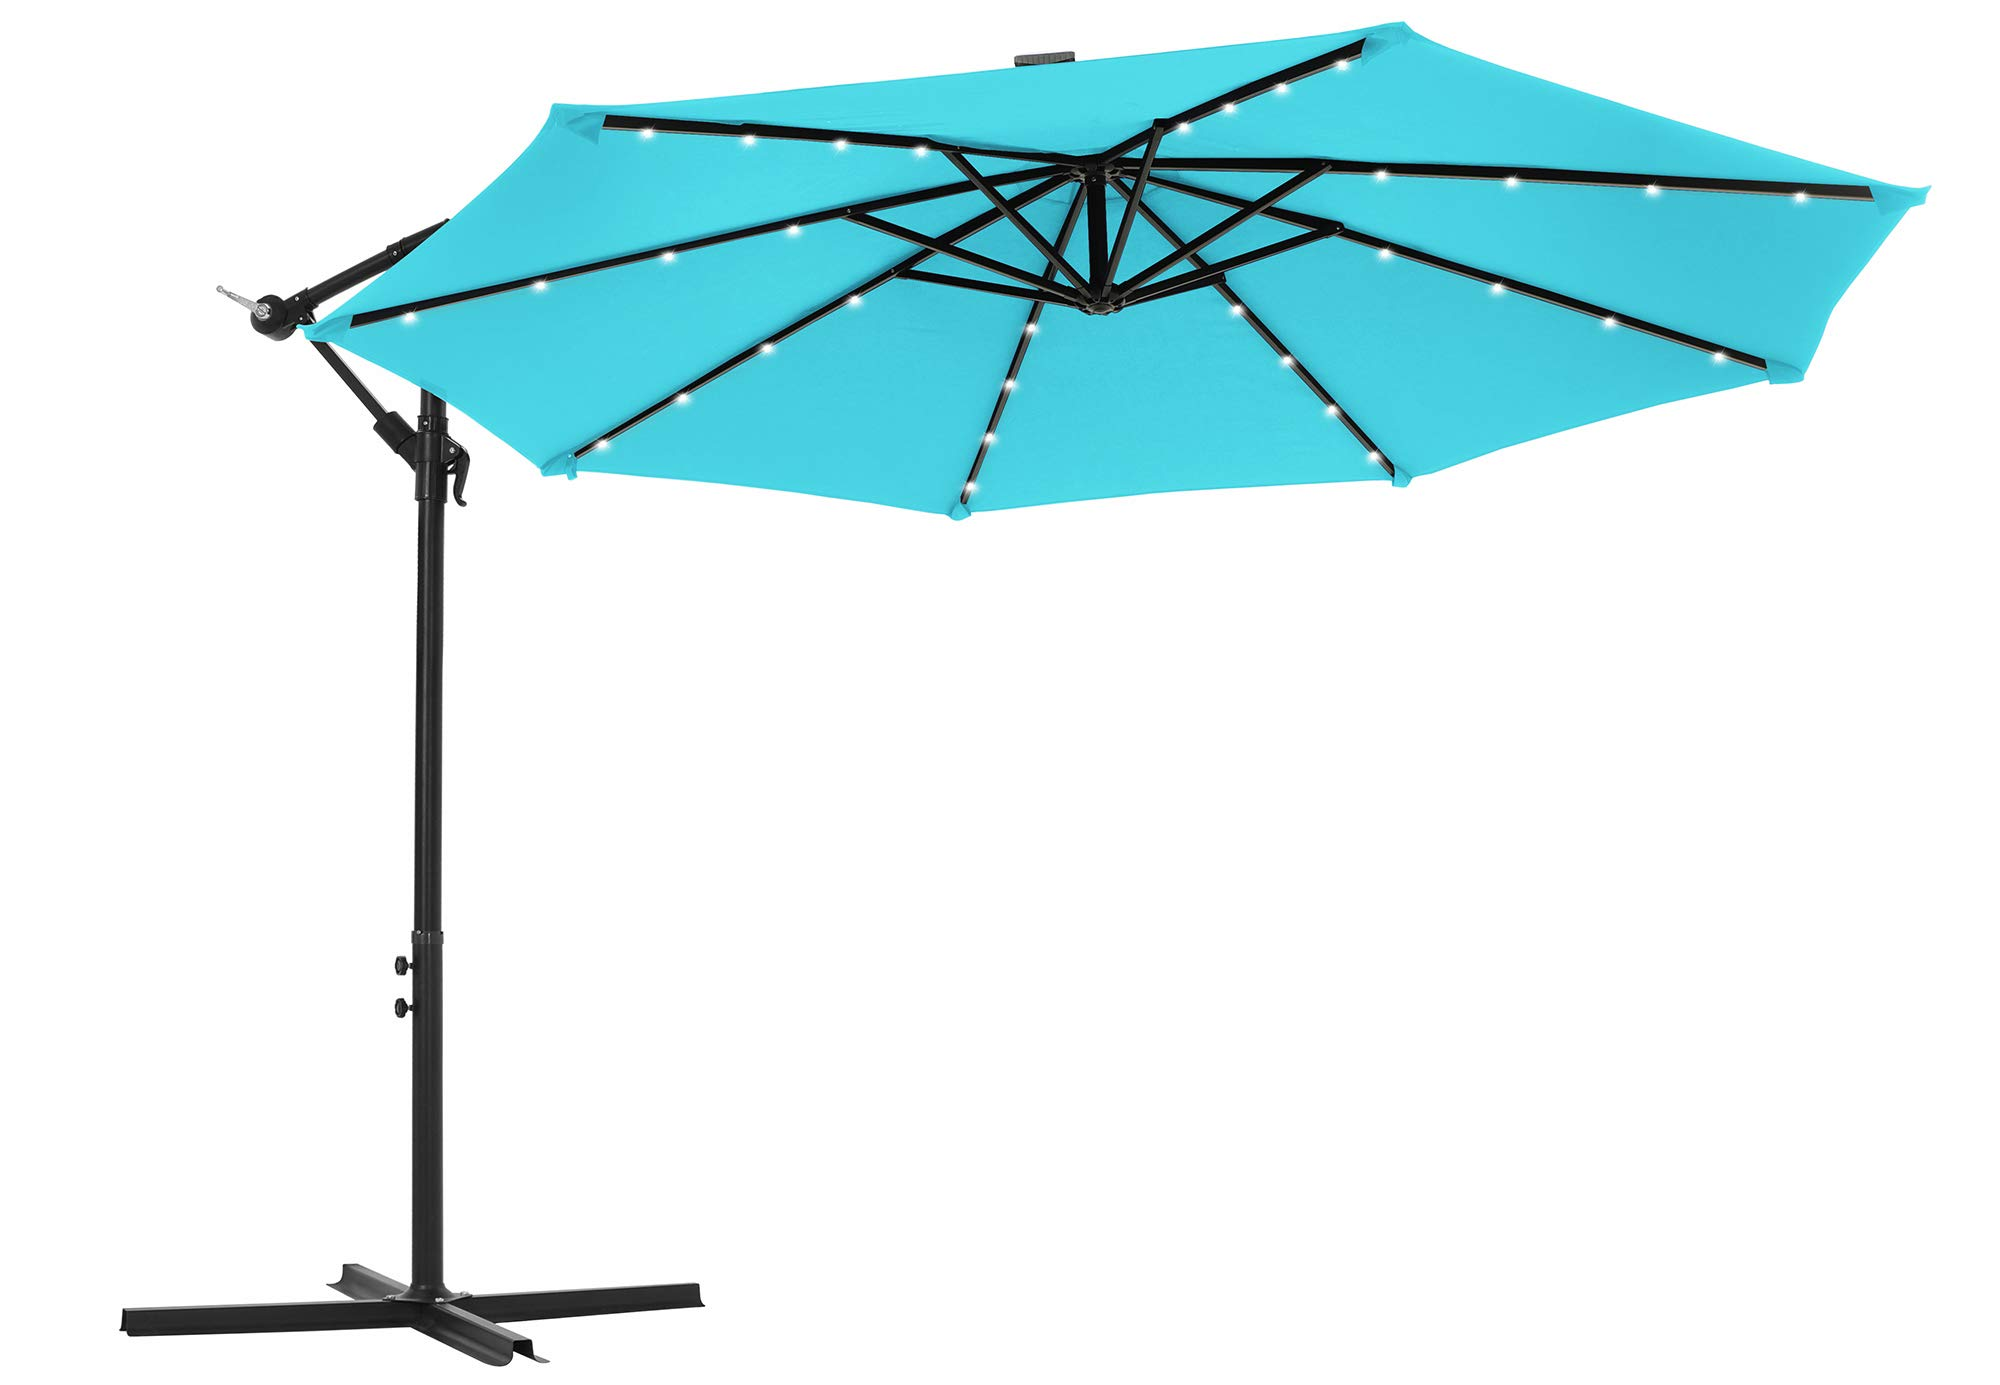 SONGMICS Outdoor Umbrella with Solar-Powered LED Lights, 10 ft Cantilever Umbrella, Standing Offset Patio Umbrella with Base, UPF 50+, Crank for Opening Closing, Lake Blue UGPU018Q01